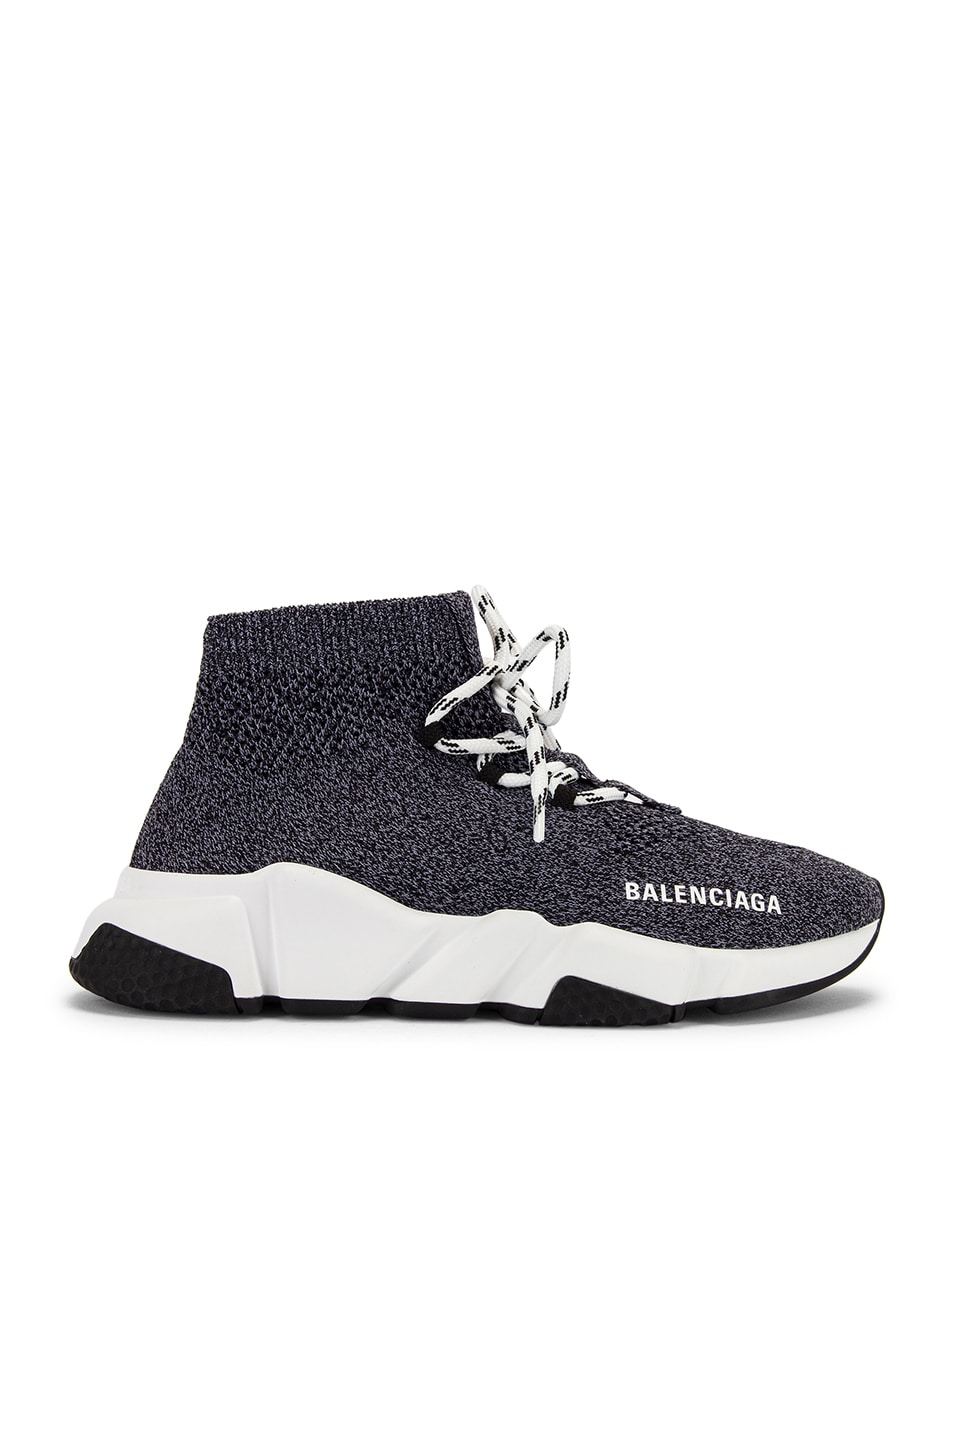 Balenciaga Knits Speed Lace Up Knit Sneakers